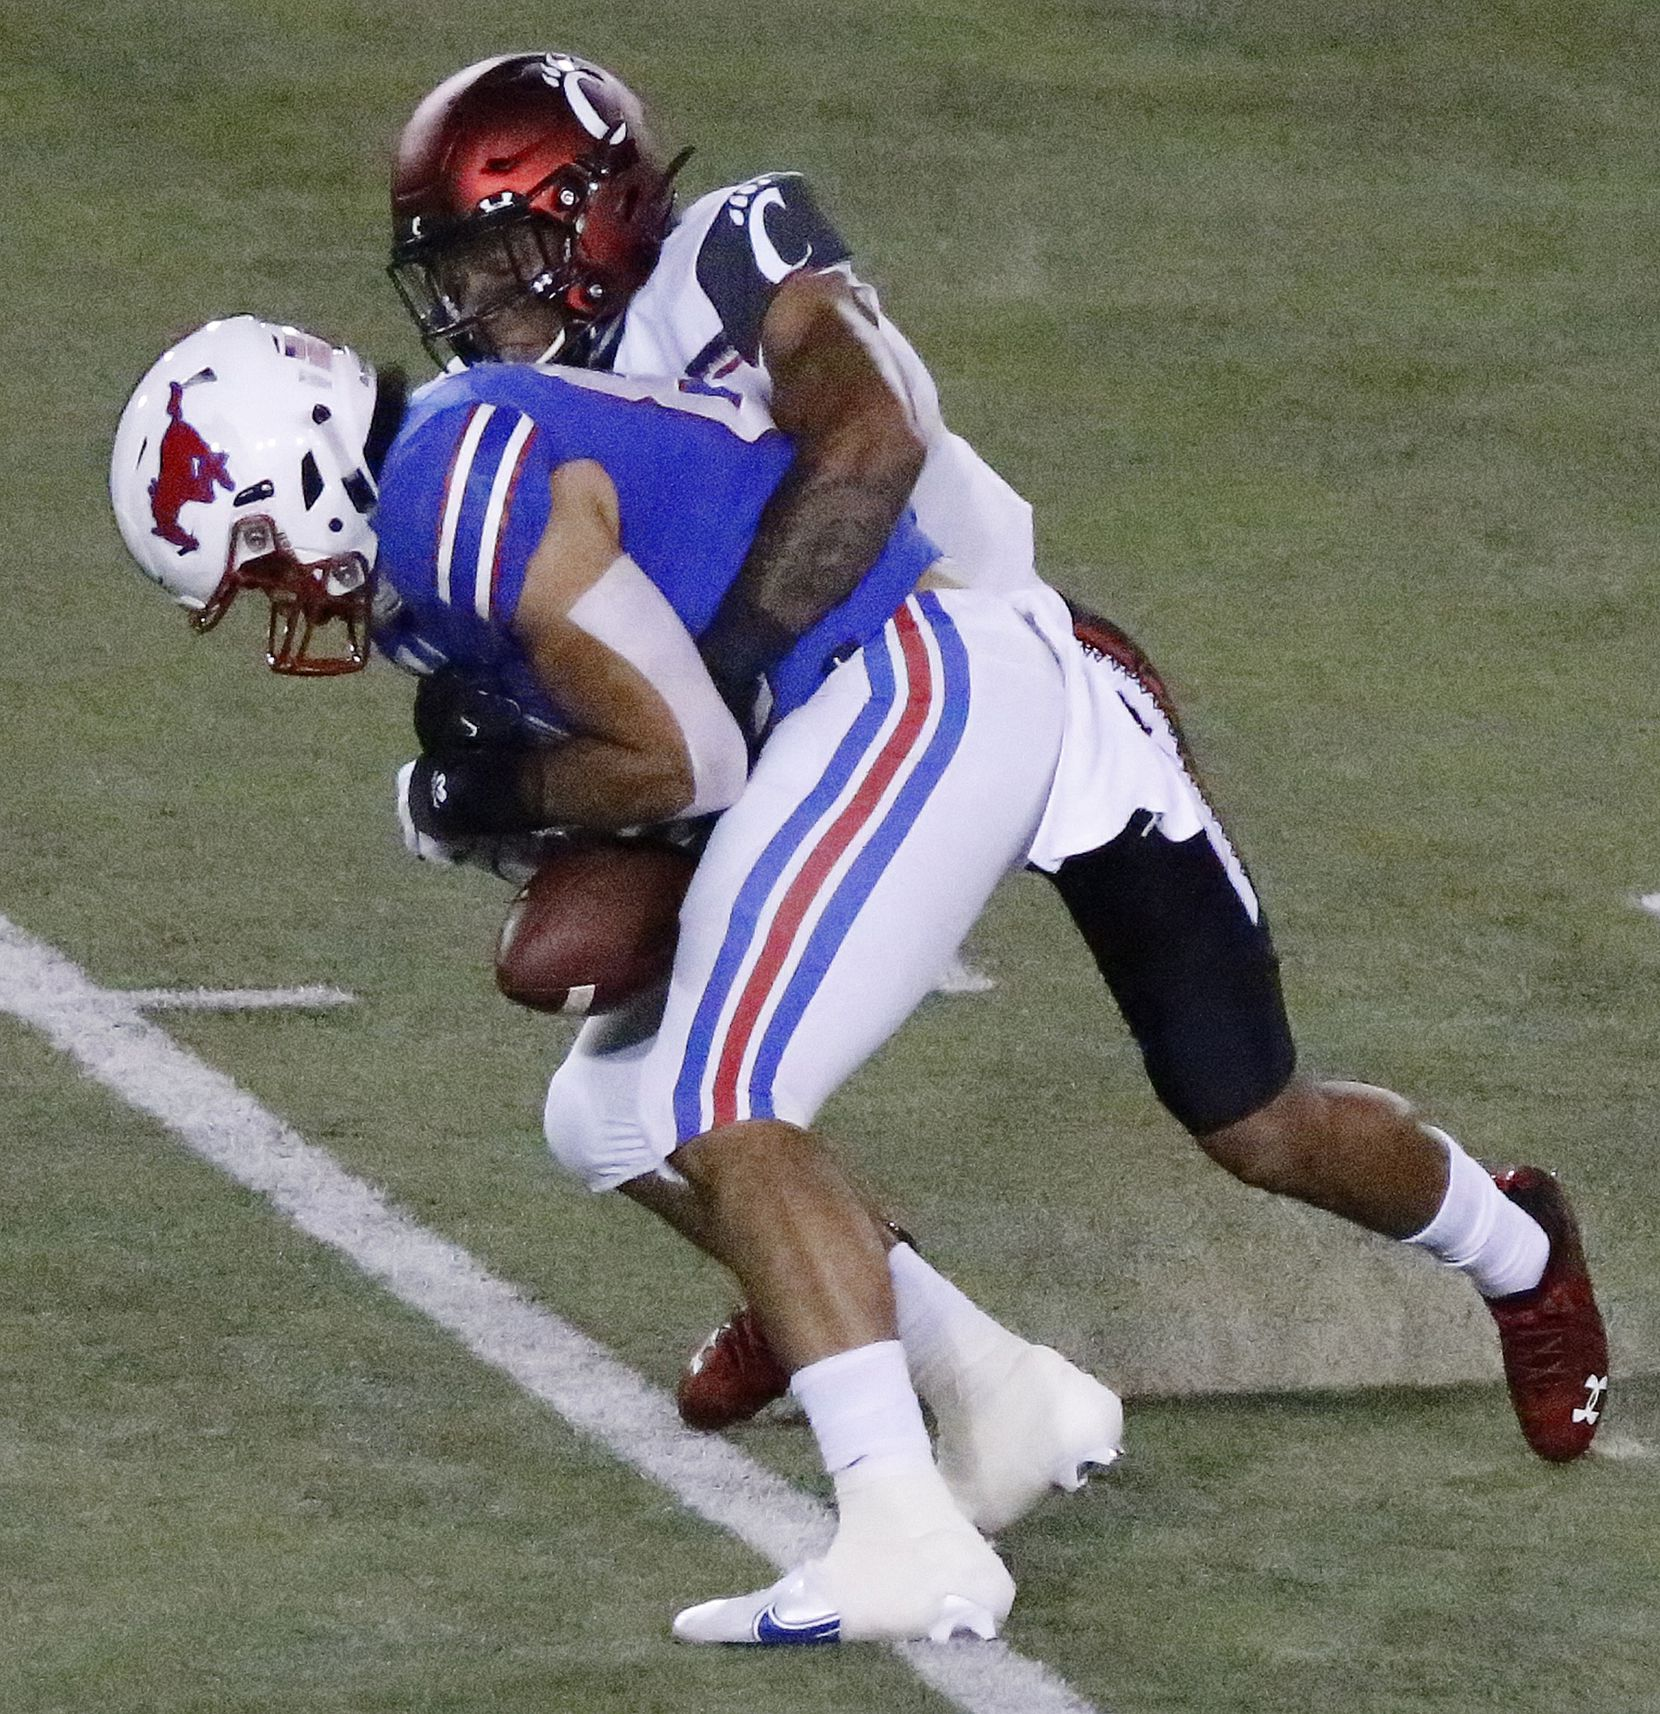 Southern Methodist Mustangs tight end Kylen Granson (83) was unable to hang onto this pass as he was defended by Cincinnati Bearcats safety Darrick Forrest (5) during the first half as SMU hosted Cincinati University in an AAC football game at Ford Stadium in Dallas on Saturday night, October 24, 2020. (Stewart F. House/Special Contributor)